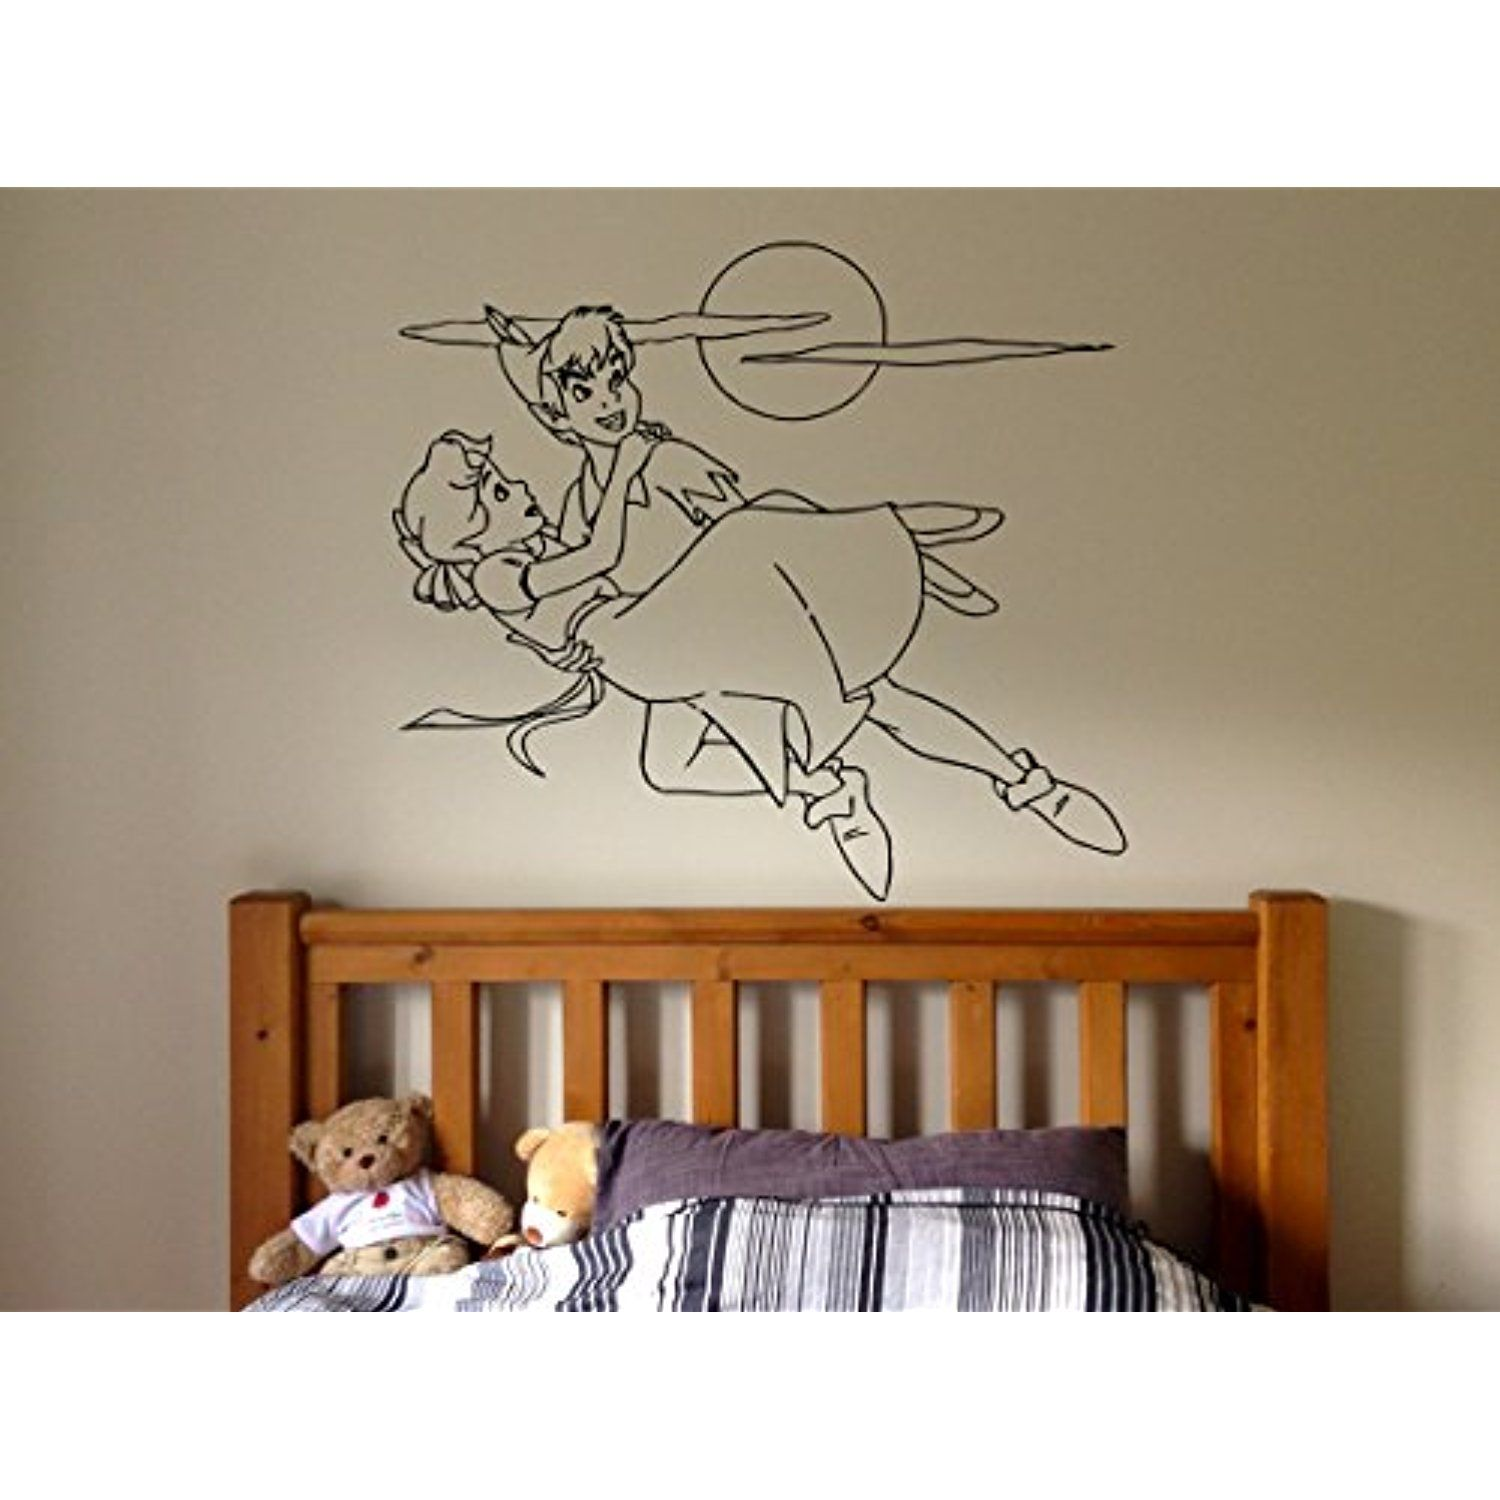 Wall Sticker Decal Peter Pan London Cartoon Tinkerbell Quote Pirate